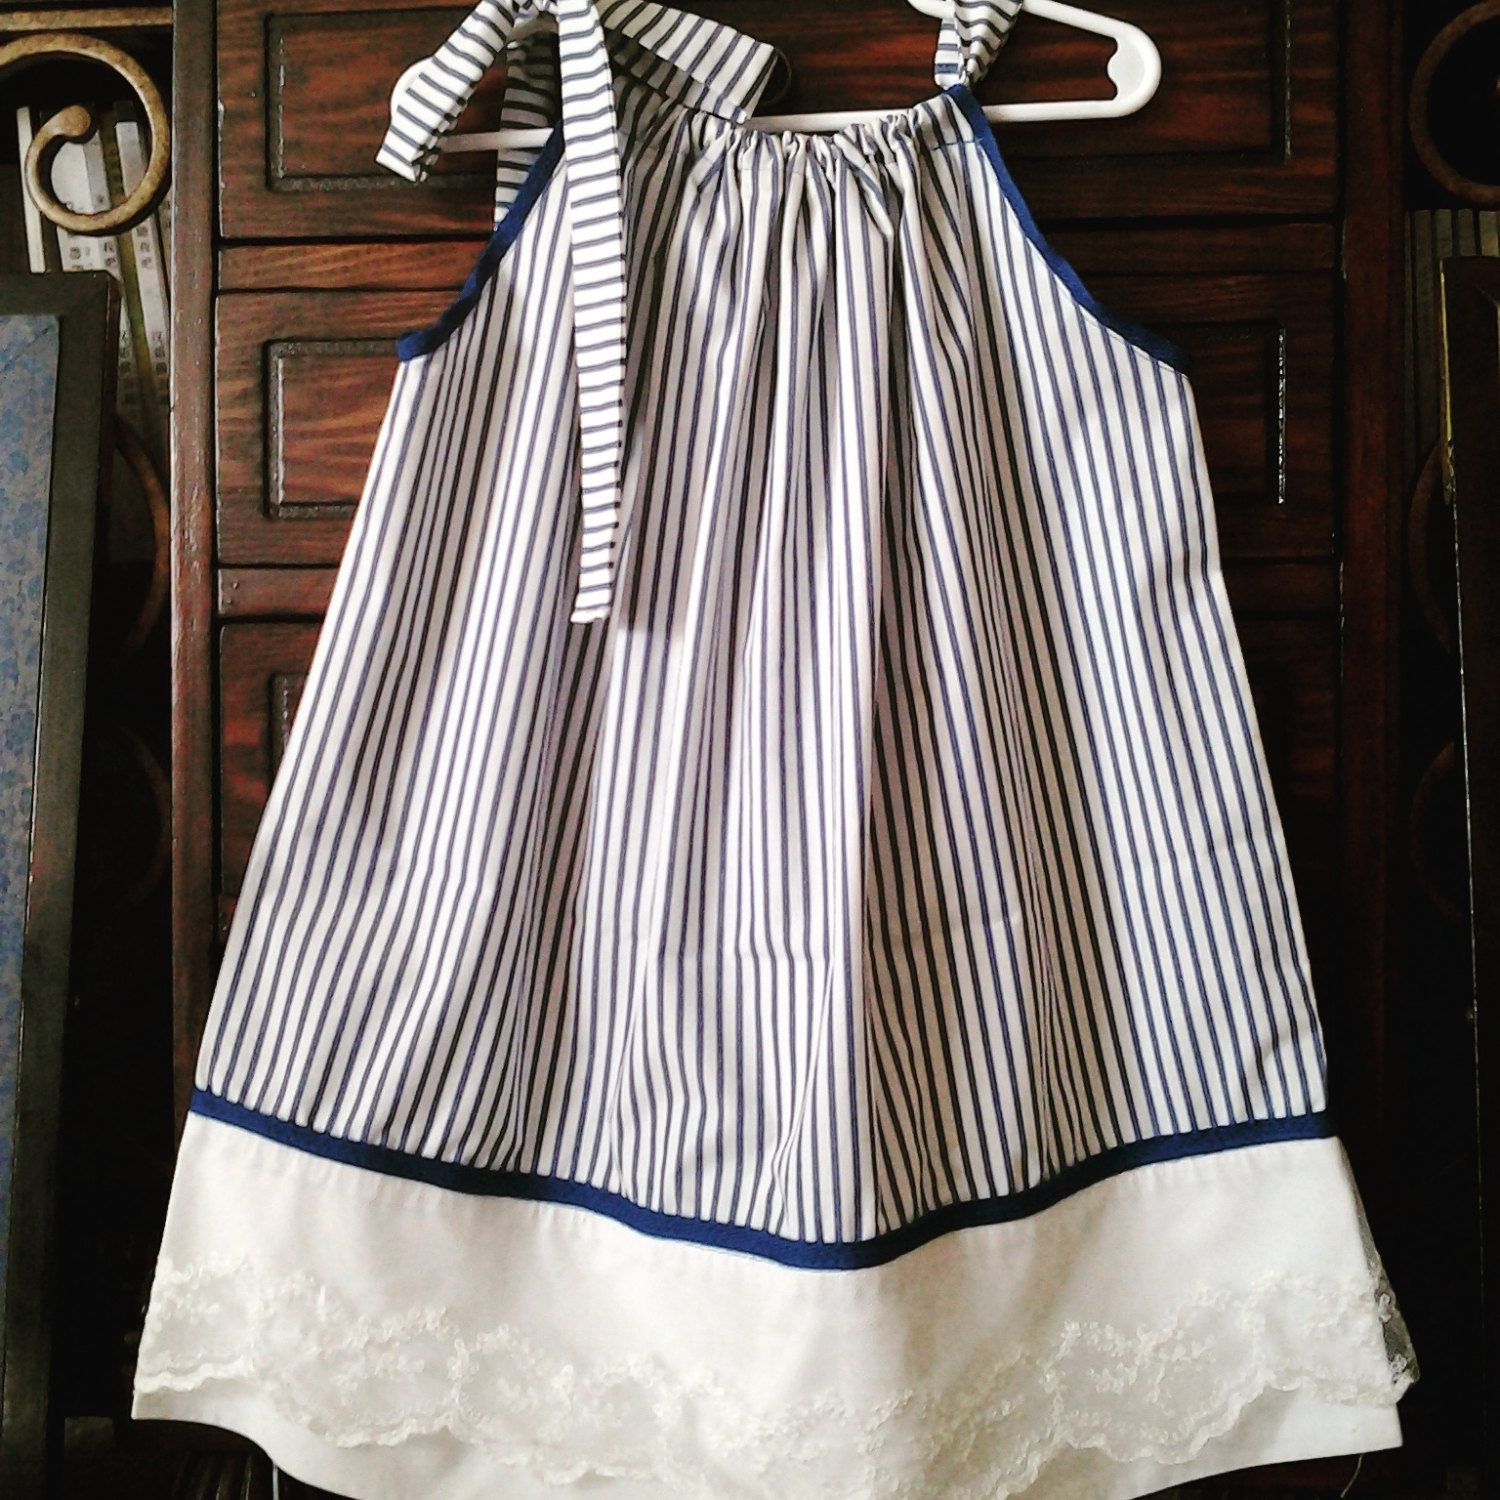 Vintage blue and white stripped cotton pillowcase dress by Sunshinesclothing on Etsy